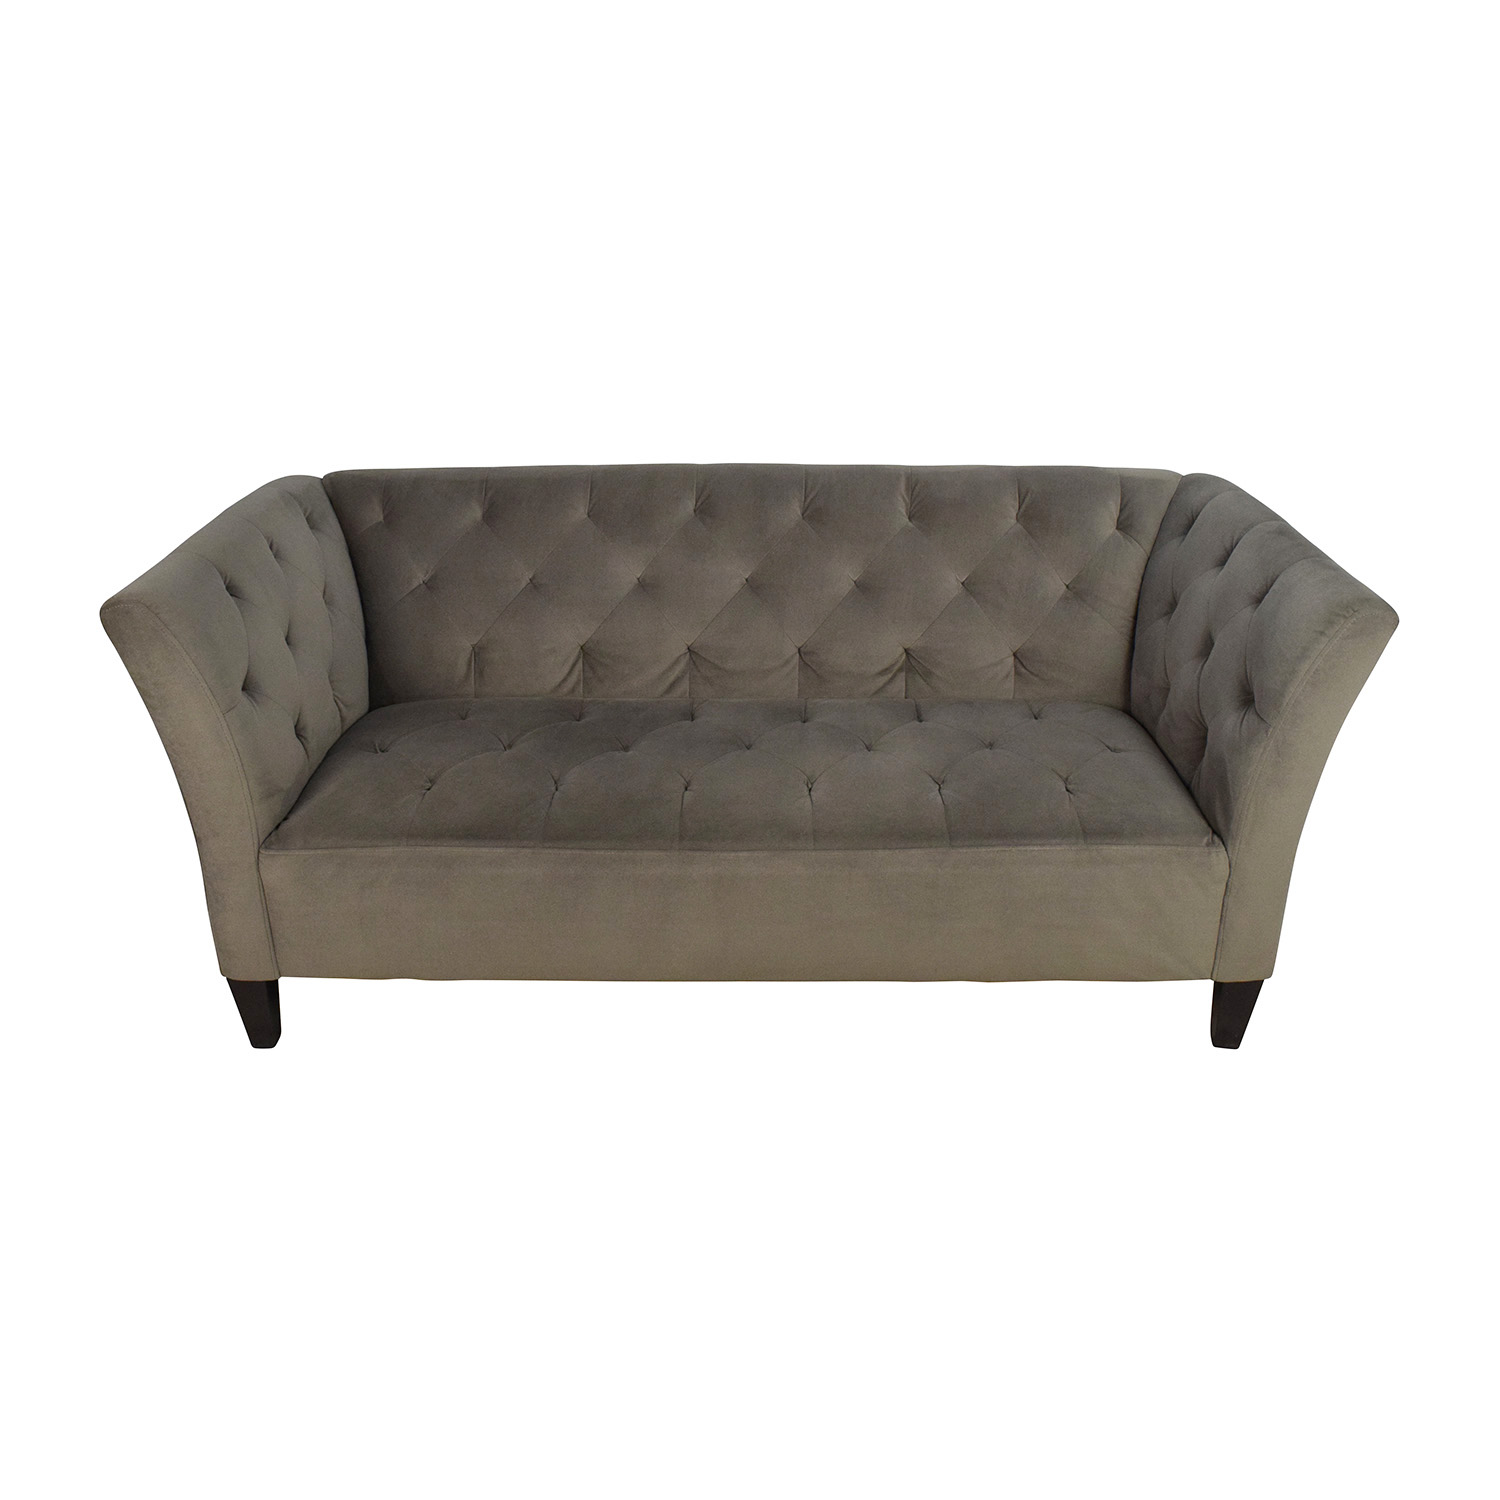 shop Macys Macys Lizbeth Gray Button Tufted Sofa online